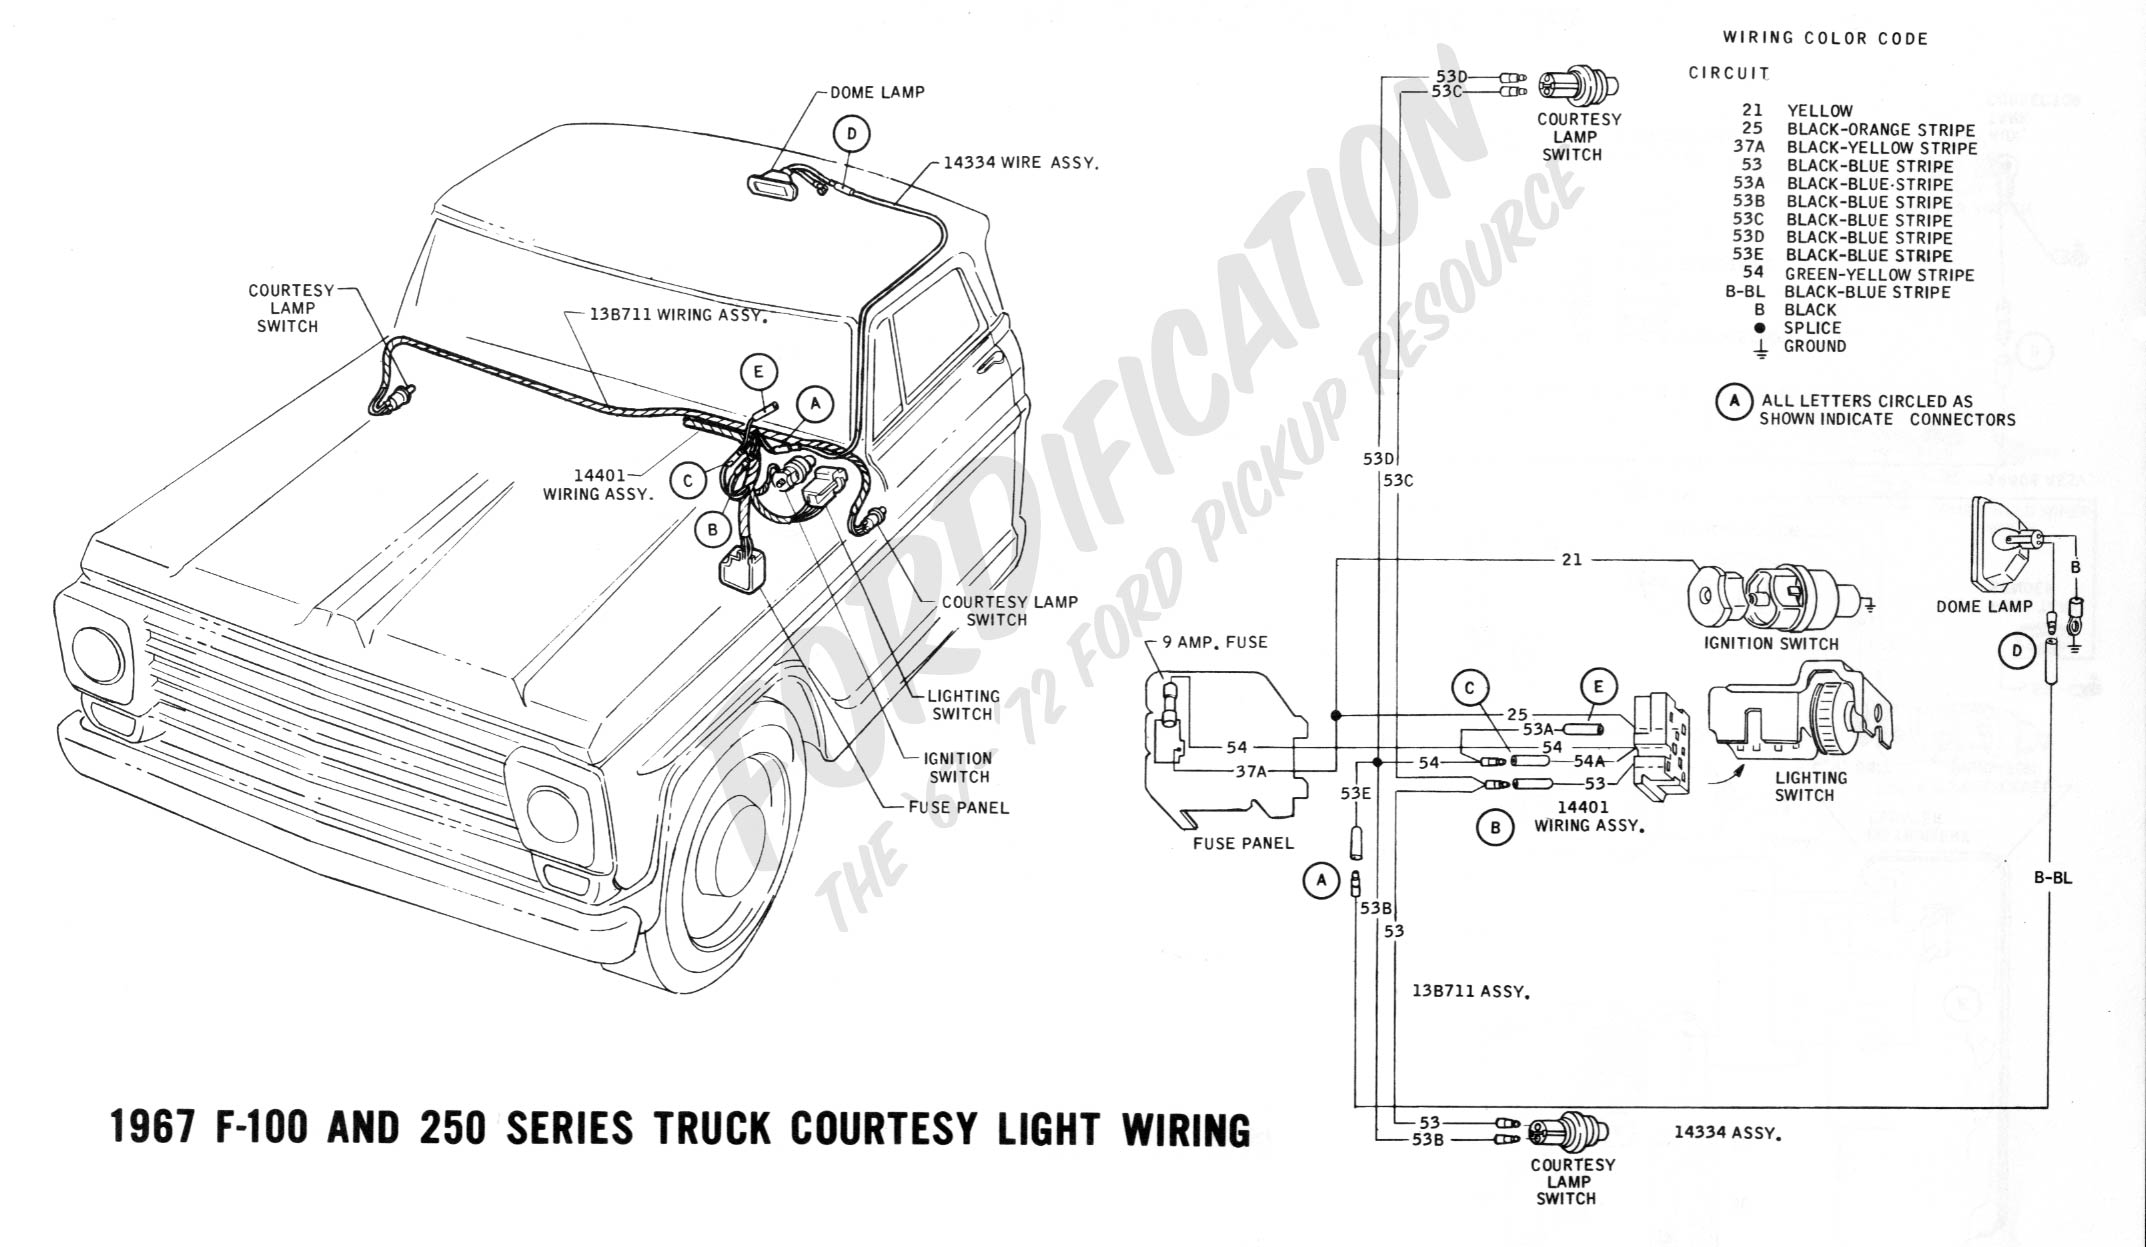 1962 Ford Truck Wiring Diagram Online Schematics 1977 Chevrolet Impala F250 Lights Diagrams U2022 1963 F100